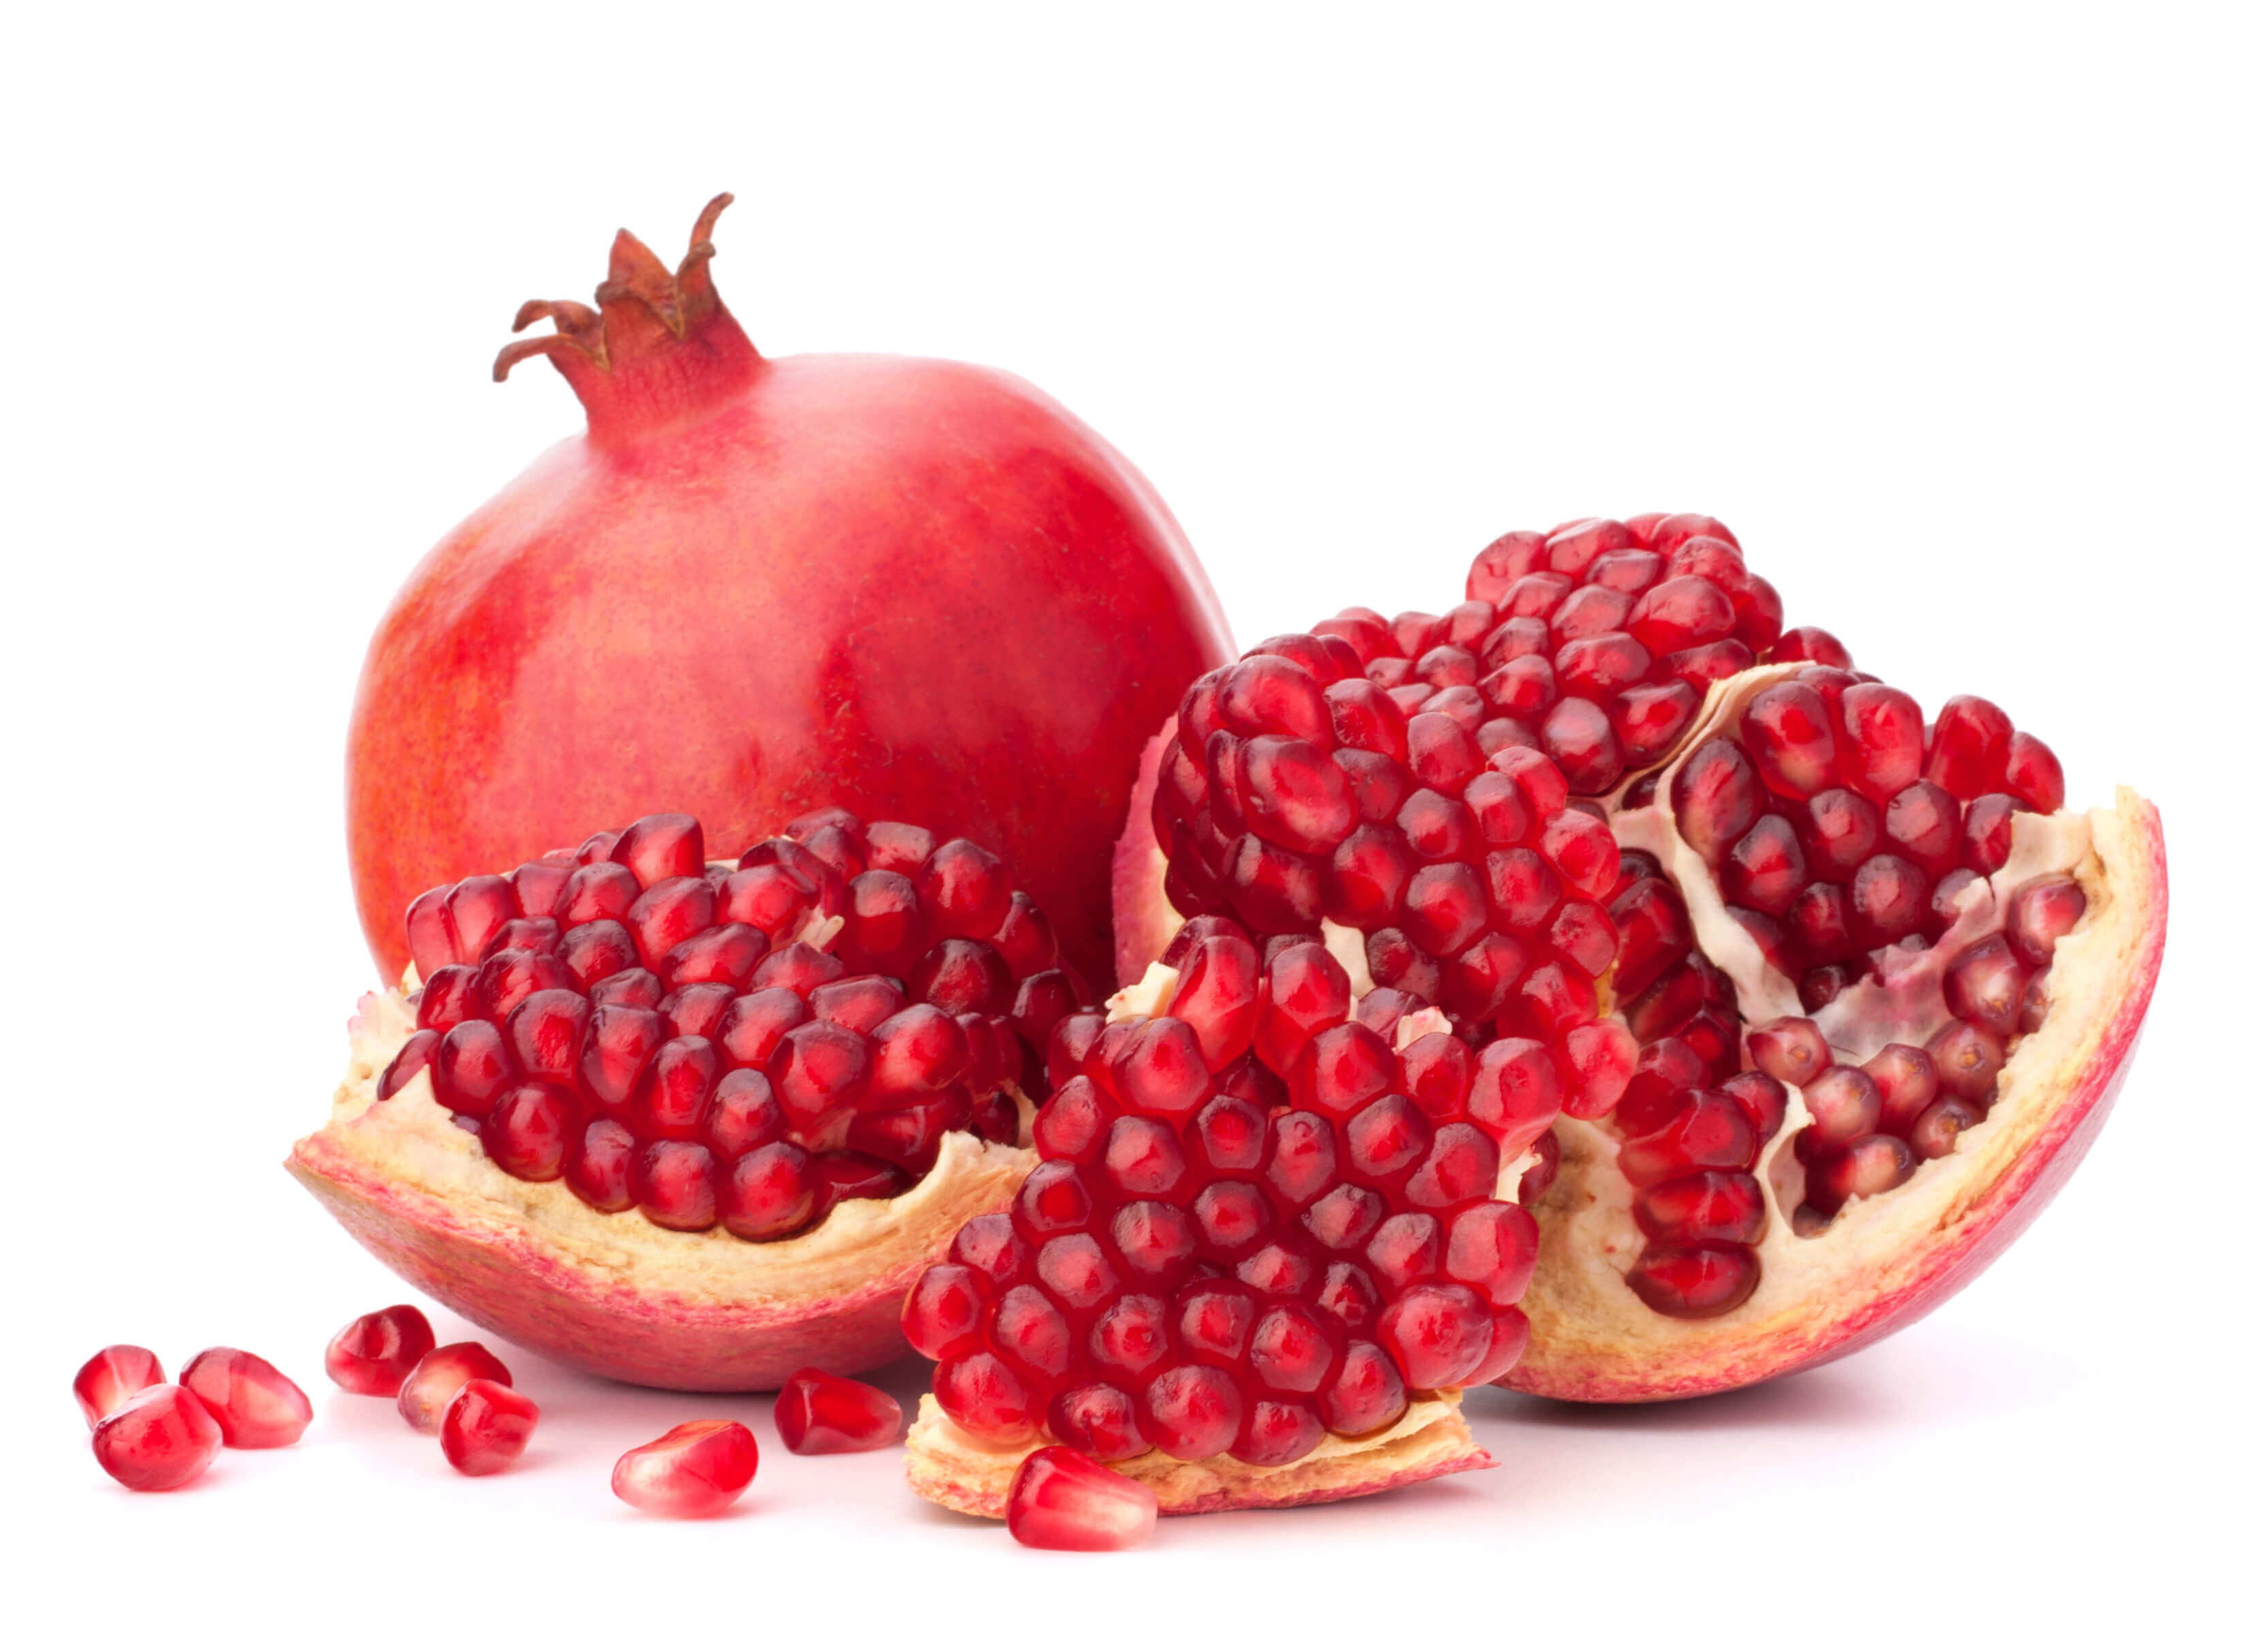 ripe-pomegranate-fruit-1.jpg